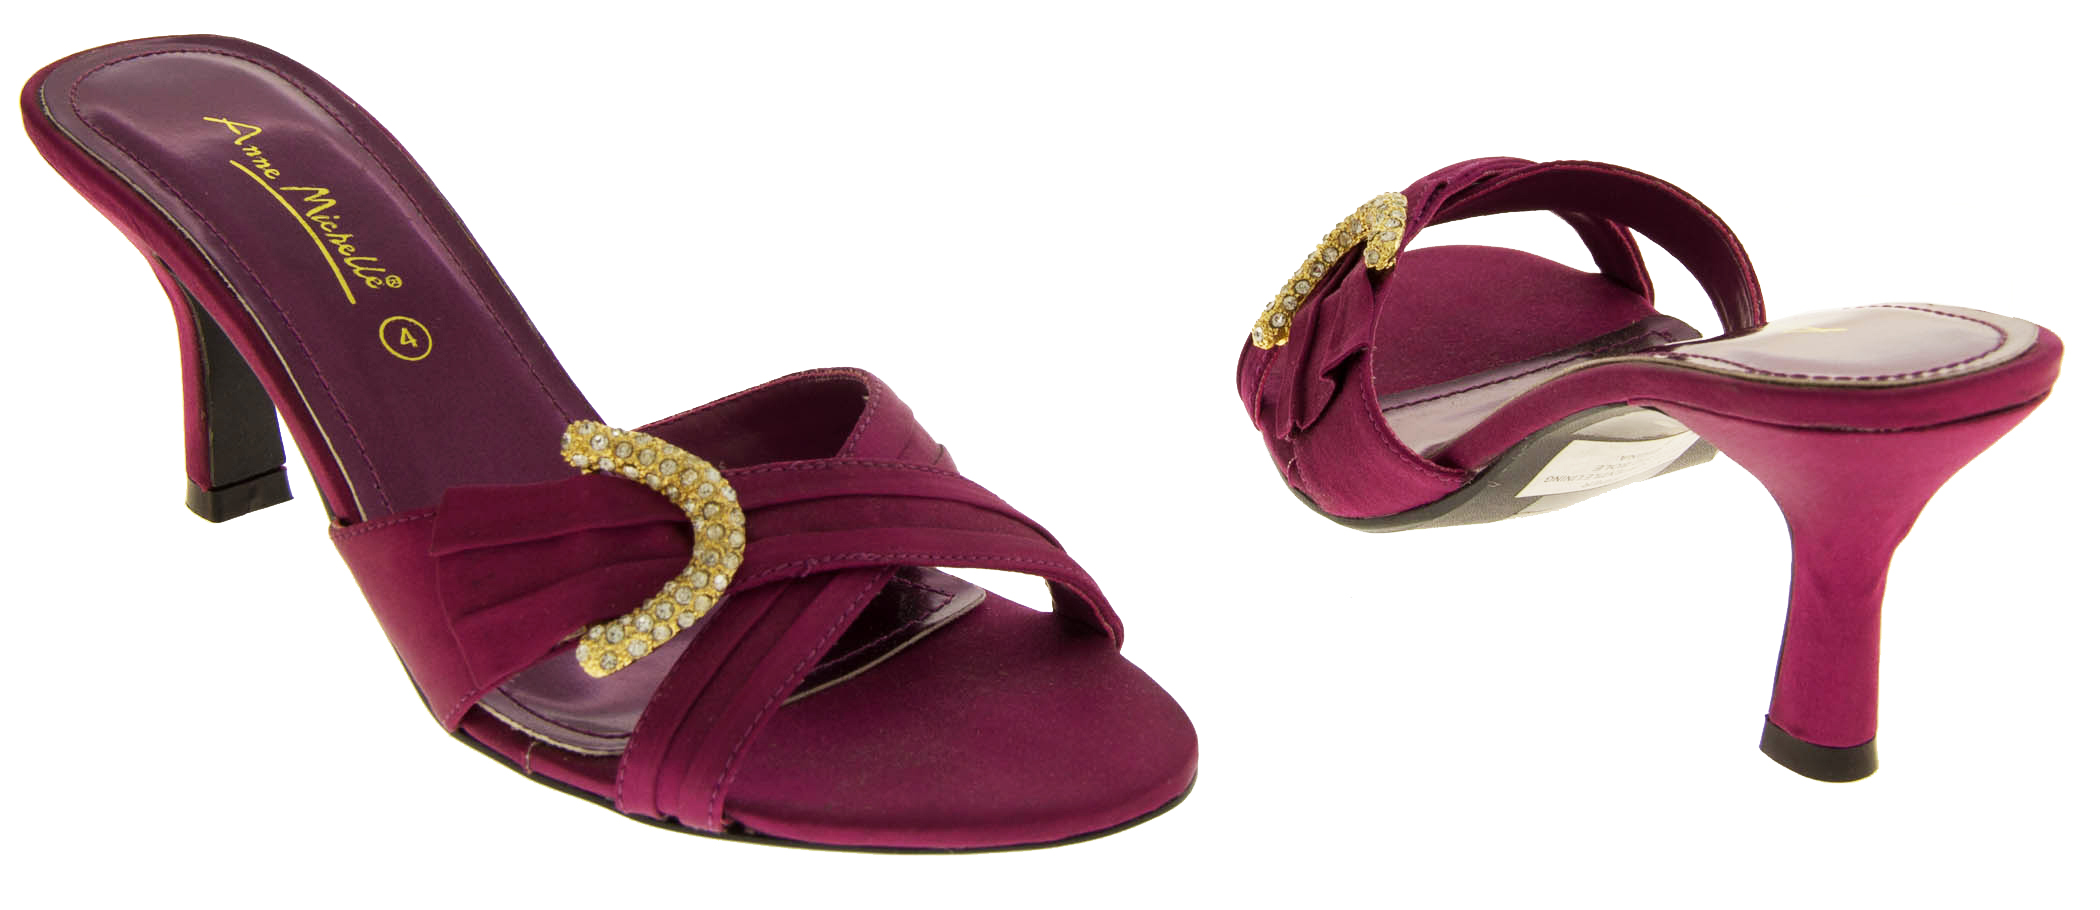 Plum Formal Shoes Size